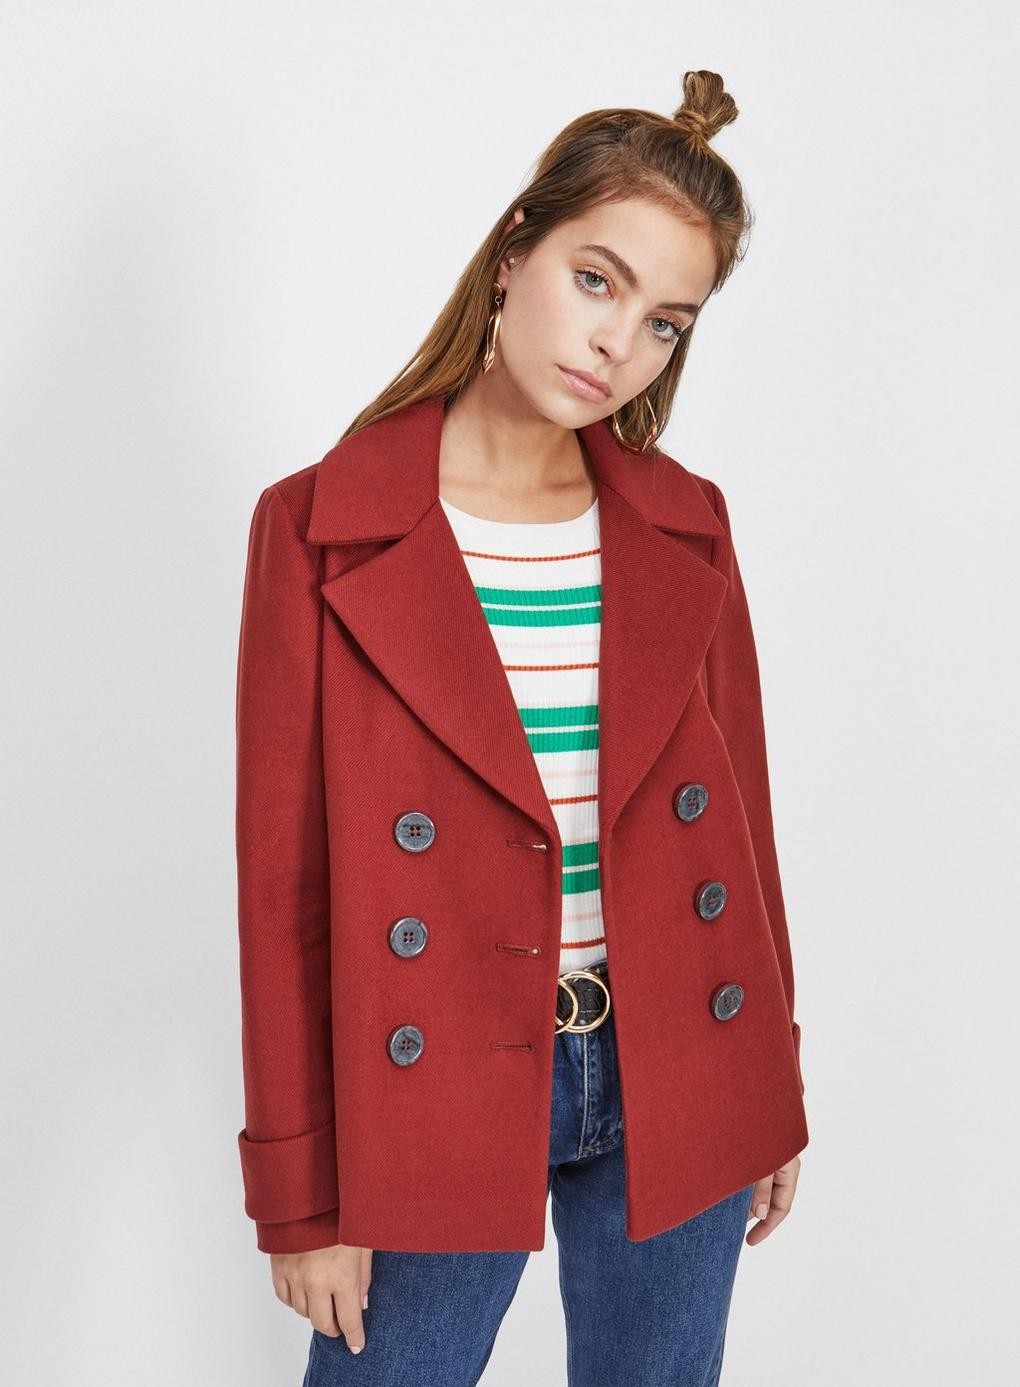 59bf48bfa24 Miss Selfridge Petite Rust Mini Pea Coat in Red - Lyst